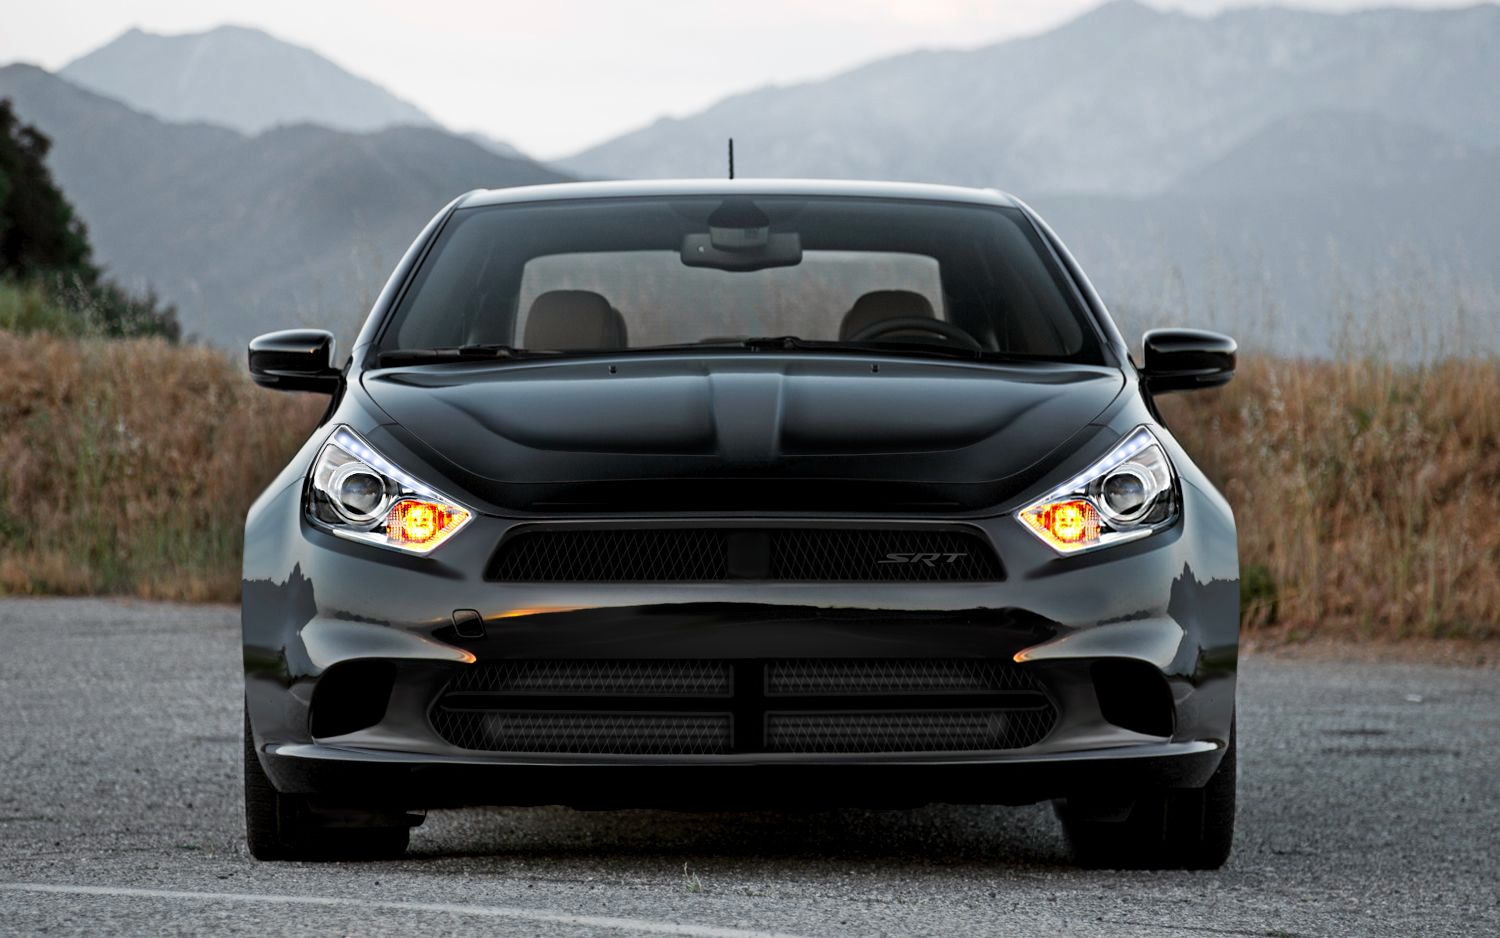 Dodge dart srt widebody new bumper design crosshair removal and headlight modification